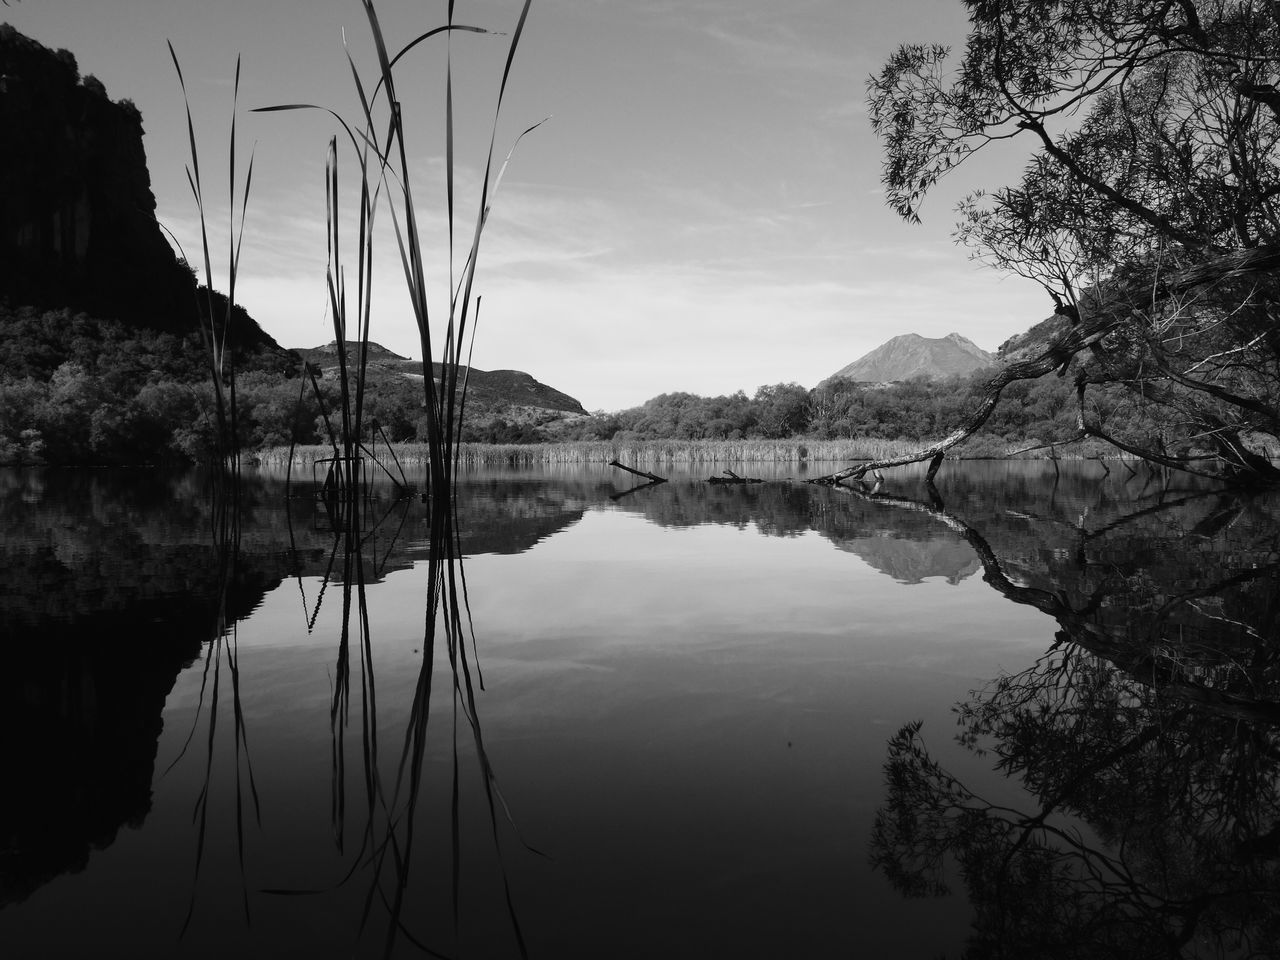 Reflection Nature Water Sky Beauty In Nature Scenics Tranquility Lake Tranquil Scene Tree Mountain Outdoors No People Landscape Day Water Reflections Mirror Lake Calm Water Symmetry Lake View Grass Trees Diamond Lake New Zealand Blackandwhite